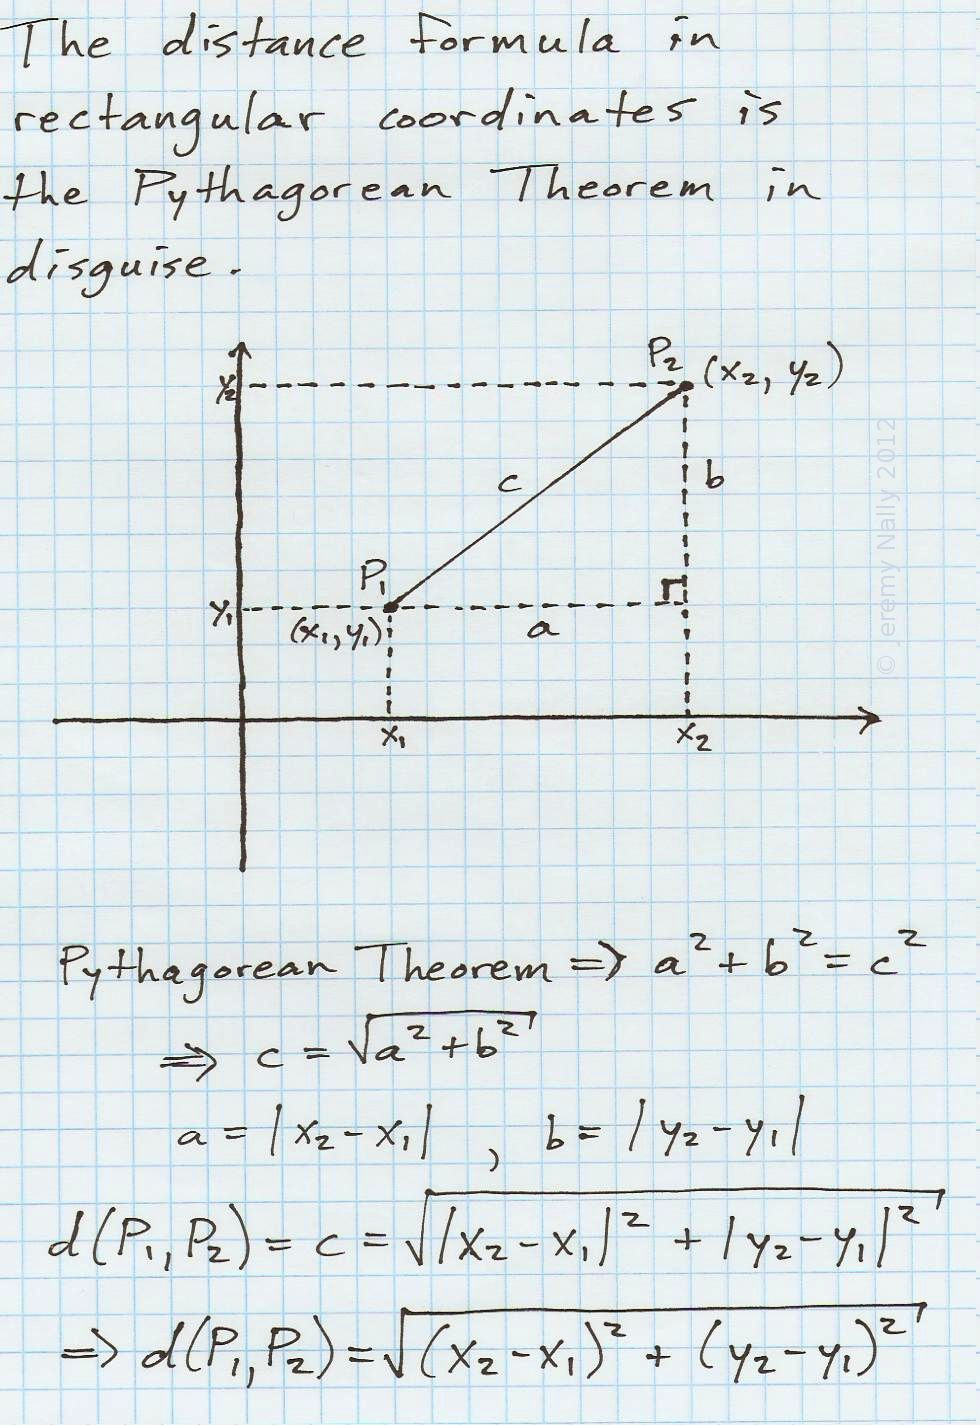 The Distance Formula In Rectangular Cartesian Coordinates Is The Pythagorean Theorem In Disguise A L Distance Formula Geometry Formulas Pythagorean Theorem